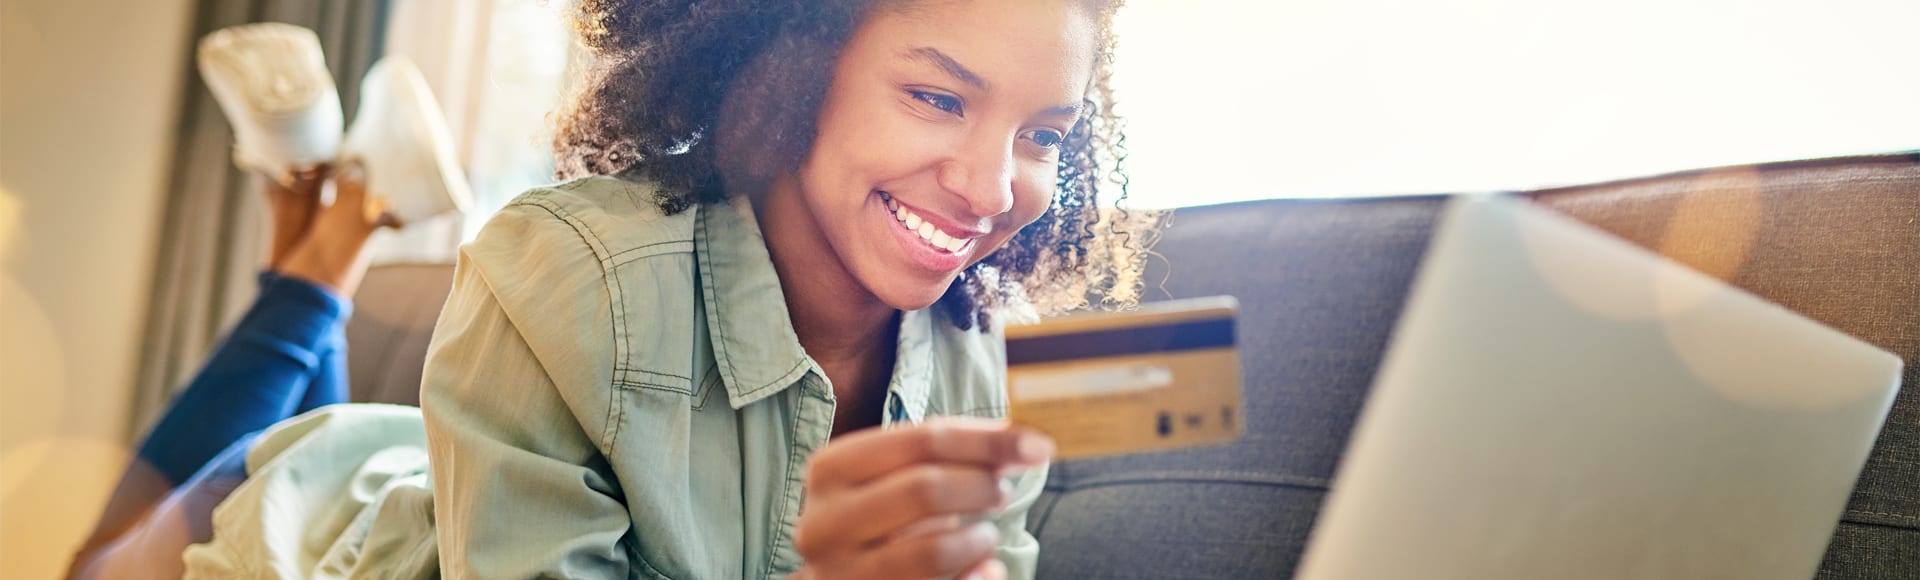 woman on couch looking at debit card and computer smiling